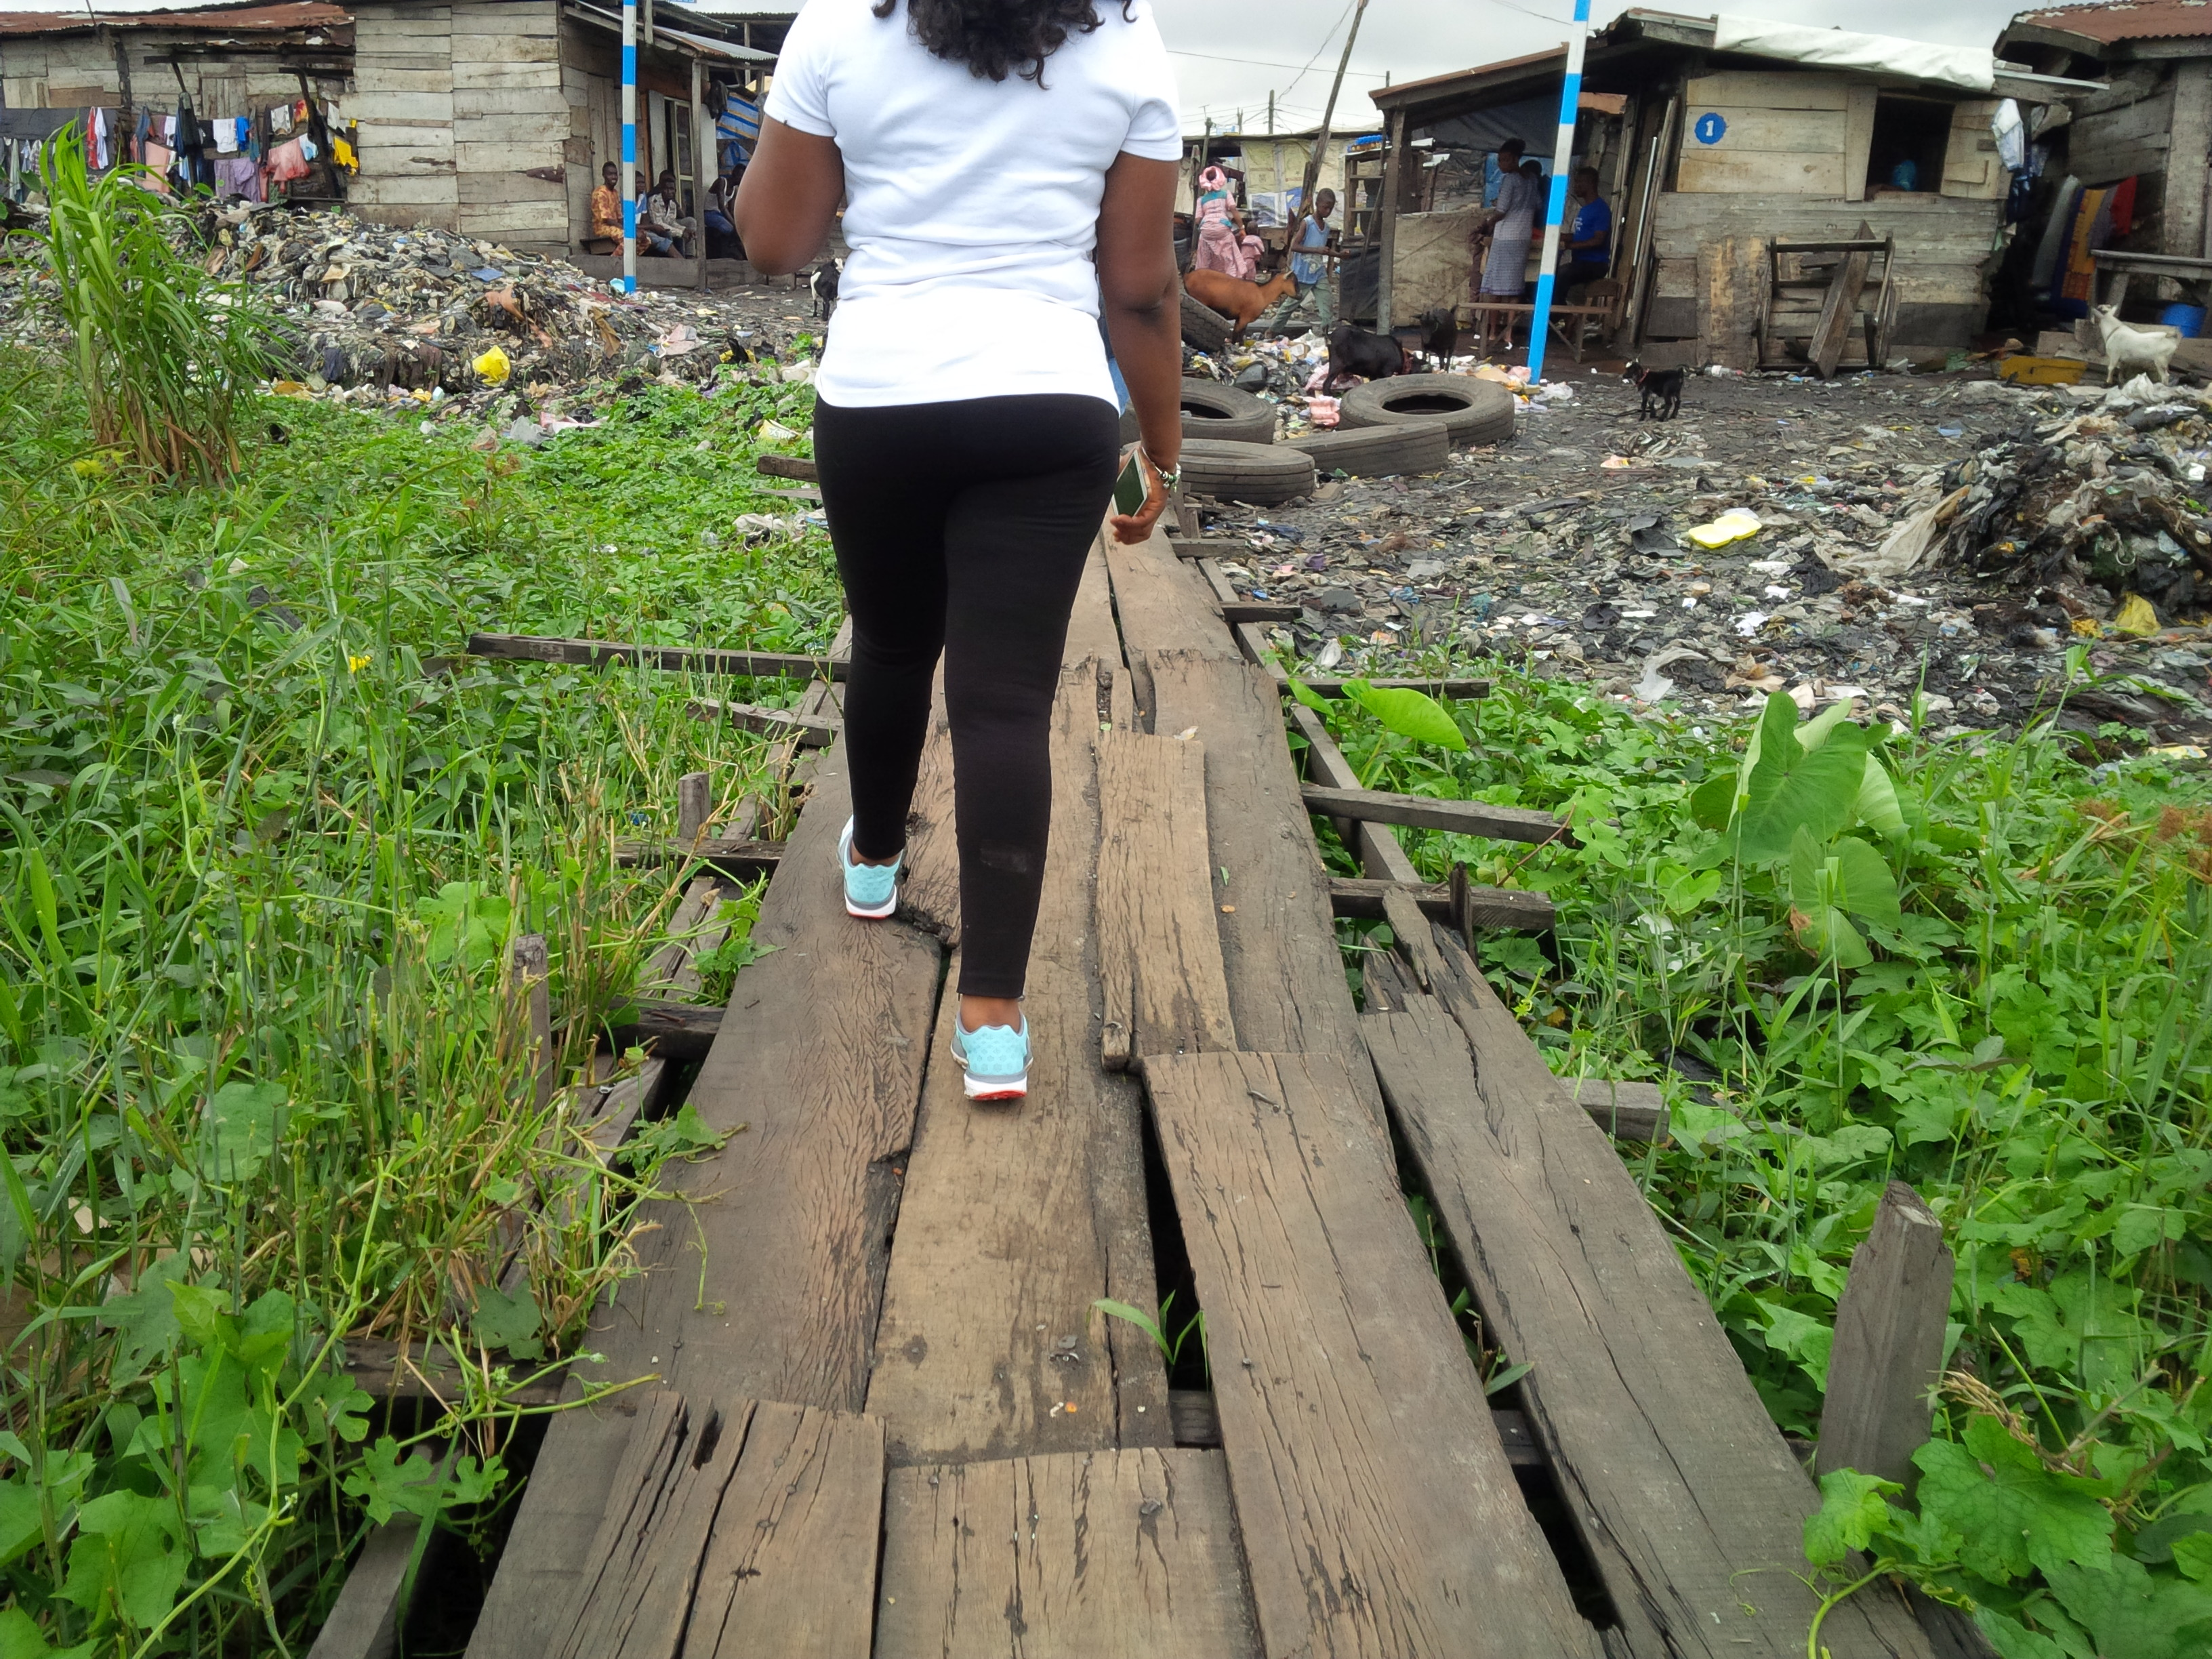 Locally constructed bridge with planks. We paid N10/person to use this bridge.